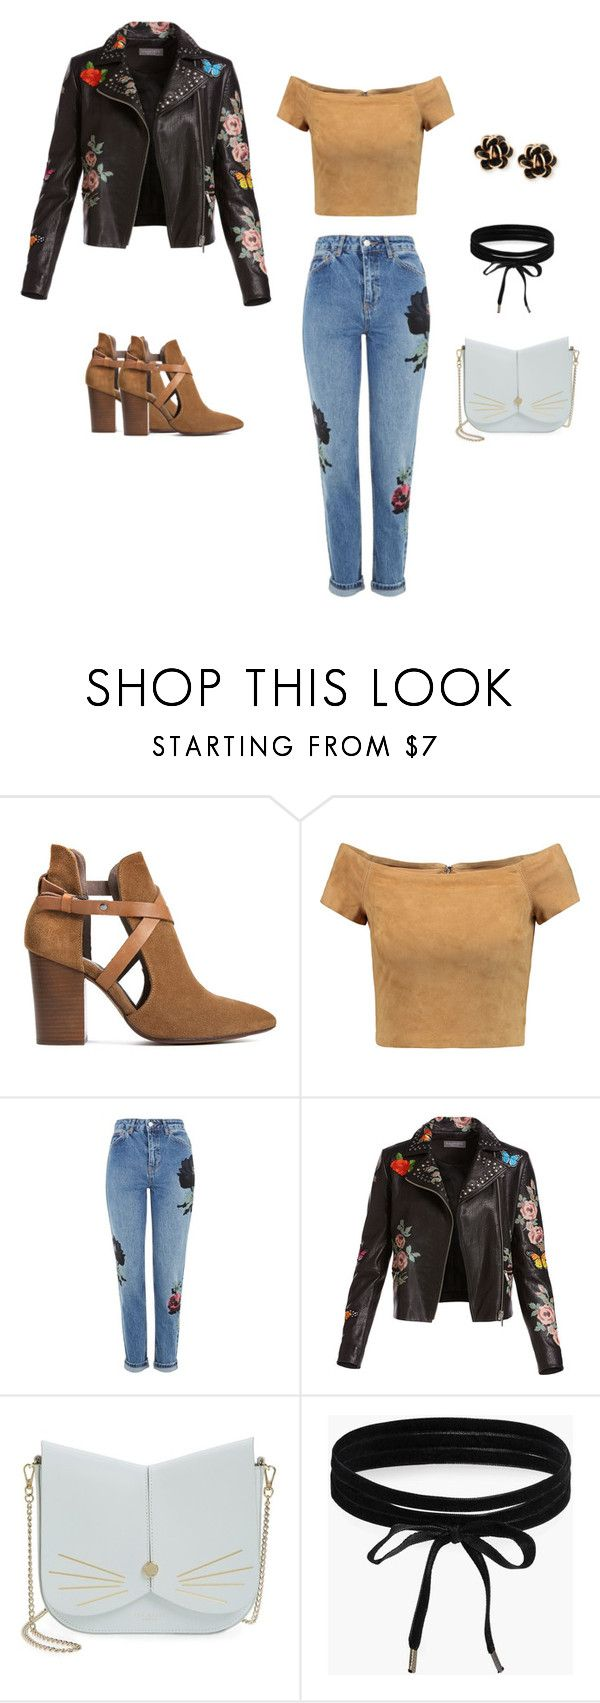 """""""Caramel rose"""" by ustine on Polyvore featuring moda, H London, Alice + Olivia, Topshop, Bagatelle, Ted Baker, Boohoo i Chantecler"""